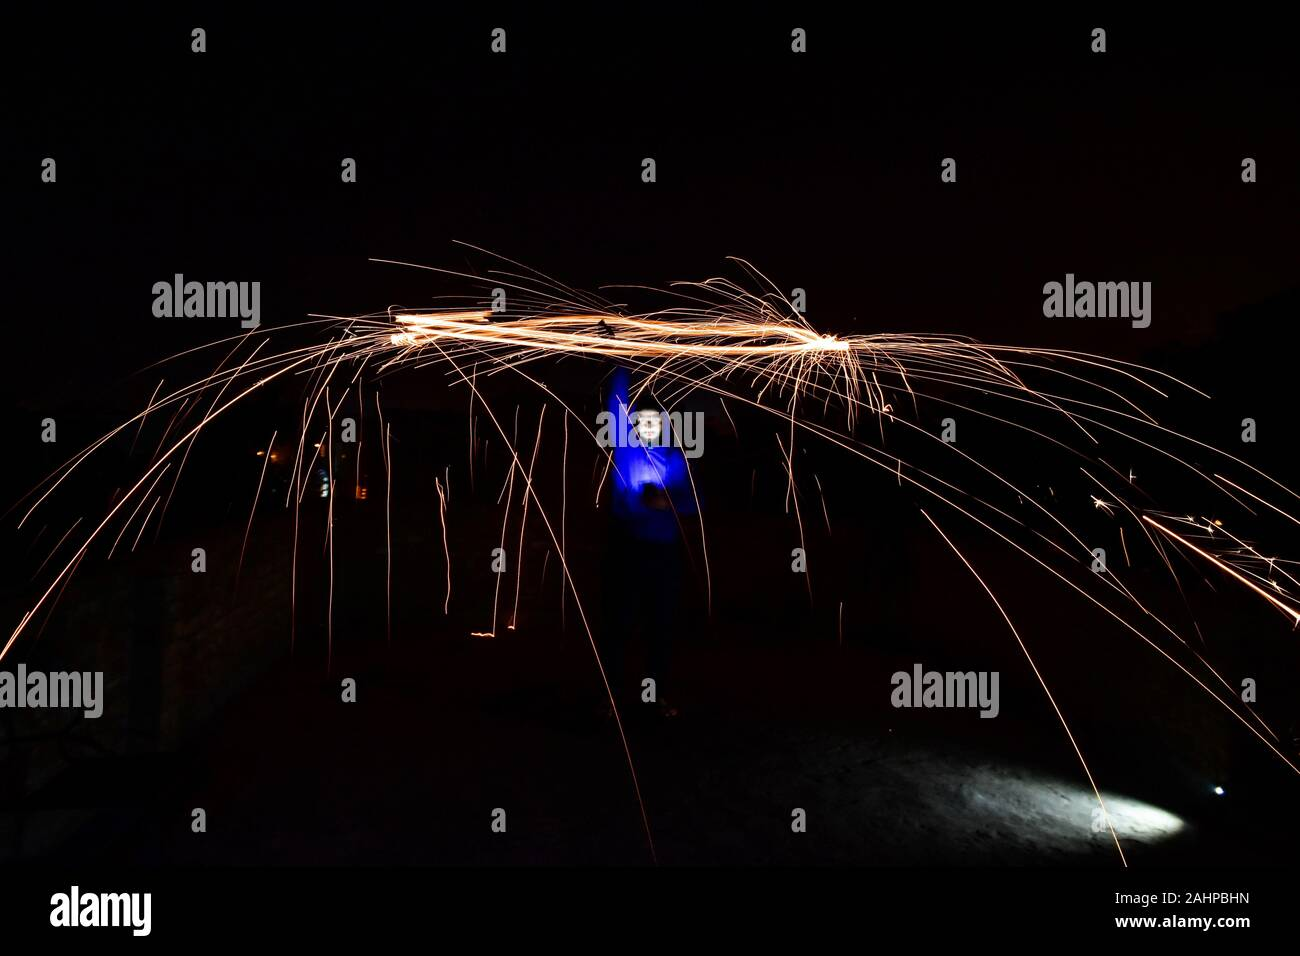 Rajpura, India. 1st Jan, 2020. A boy spins a burning steel wool with a sling performing light painting during the New Year celebrations in Rajpura town. Credit: Saqib Majeed/SOPA Images/ZUMA Wire/Alamy Live News Stock Photo